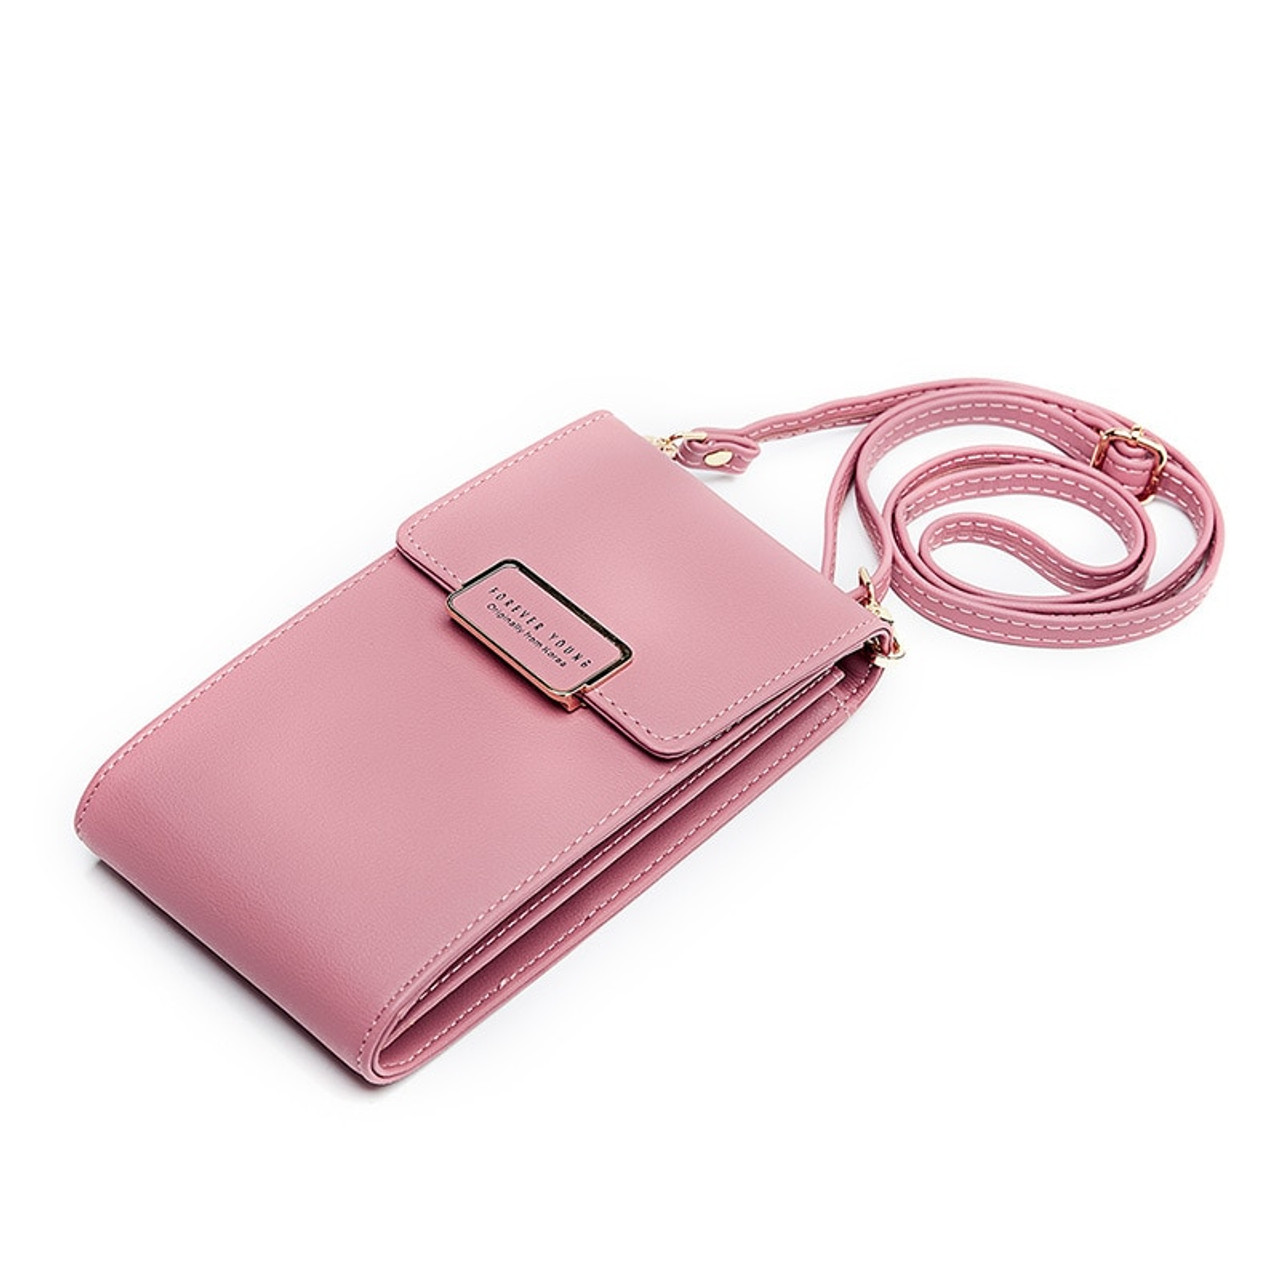 f269deaa5011 ... Luxury Women Phone Bag Message PU Leather Mini Shoulder Bags Girls With  Coin Purses Crossbody Bag ...